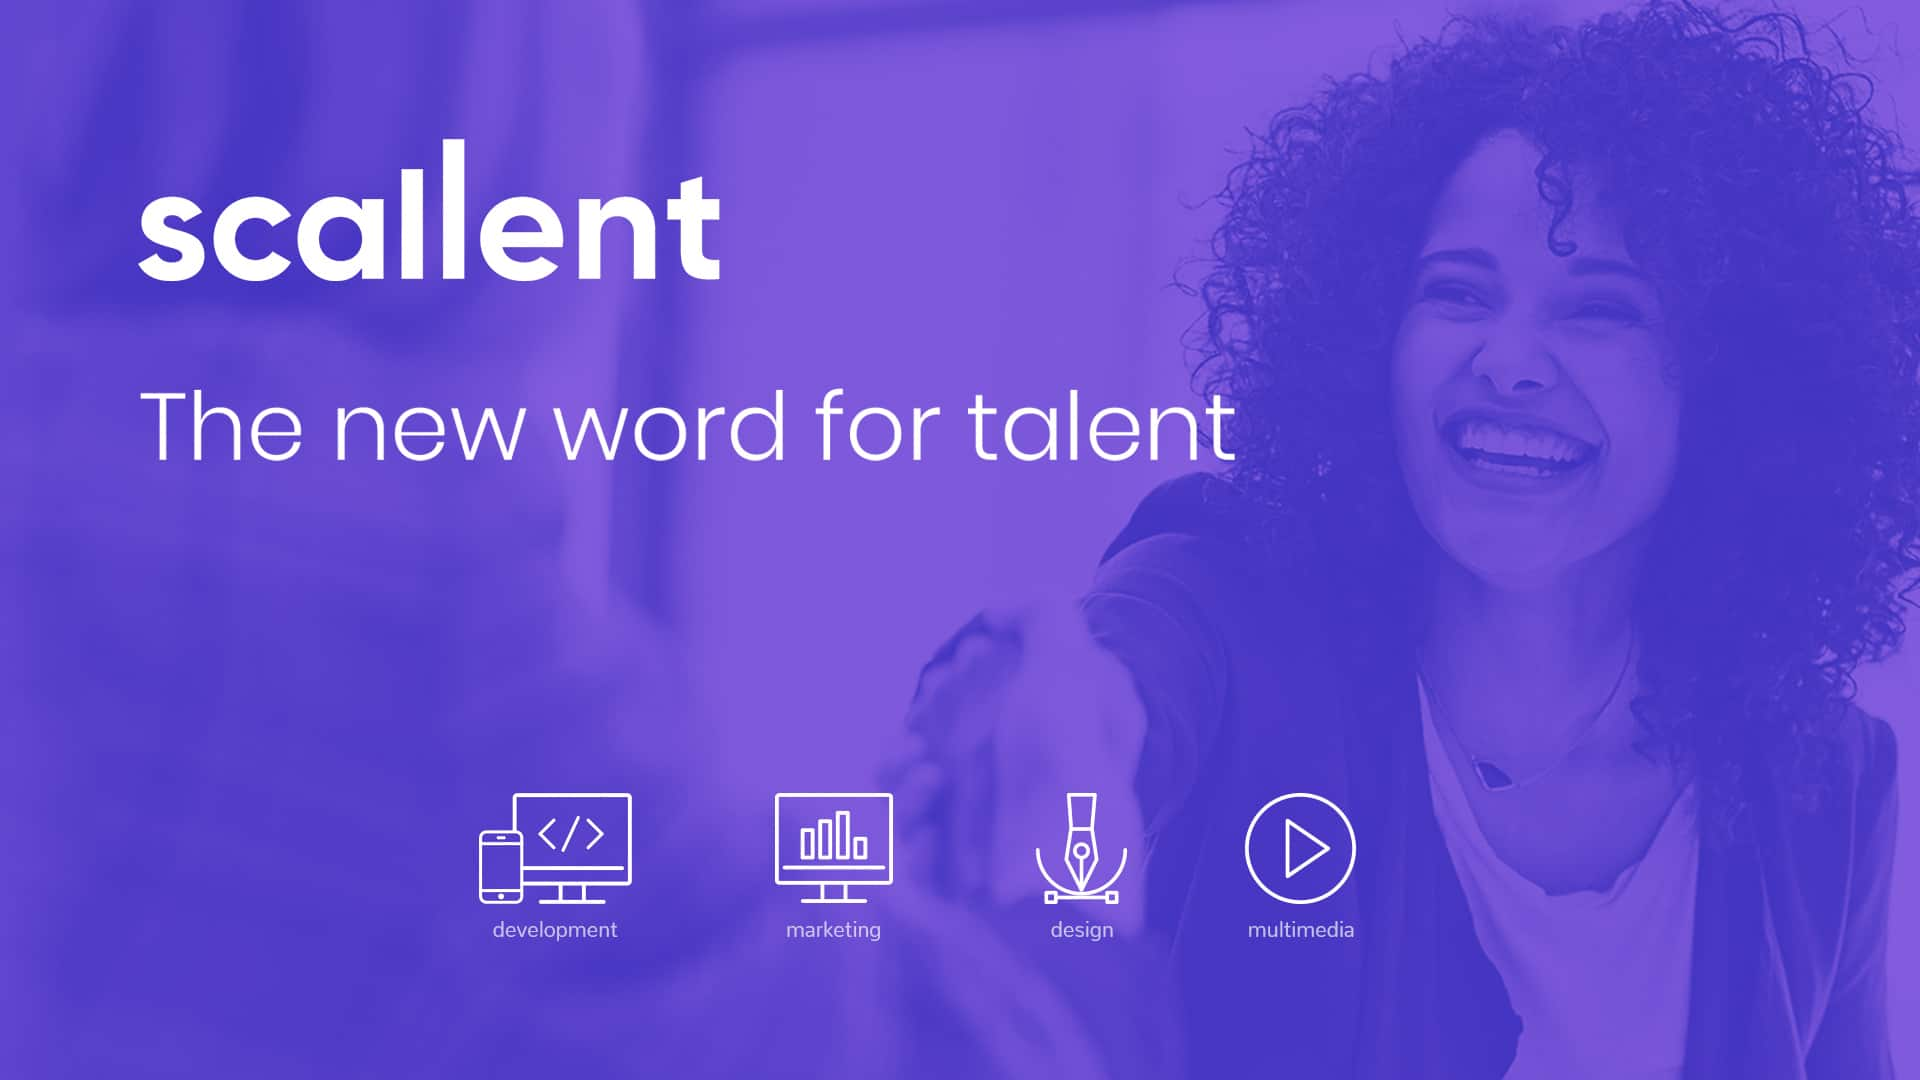 Scallent – the new word for talent